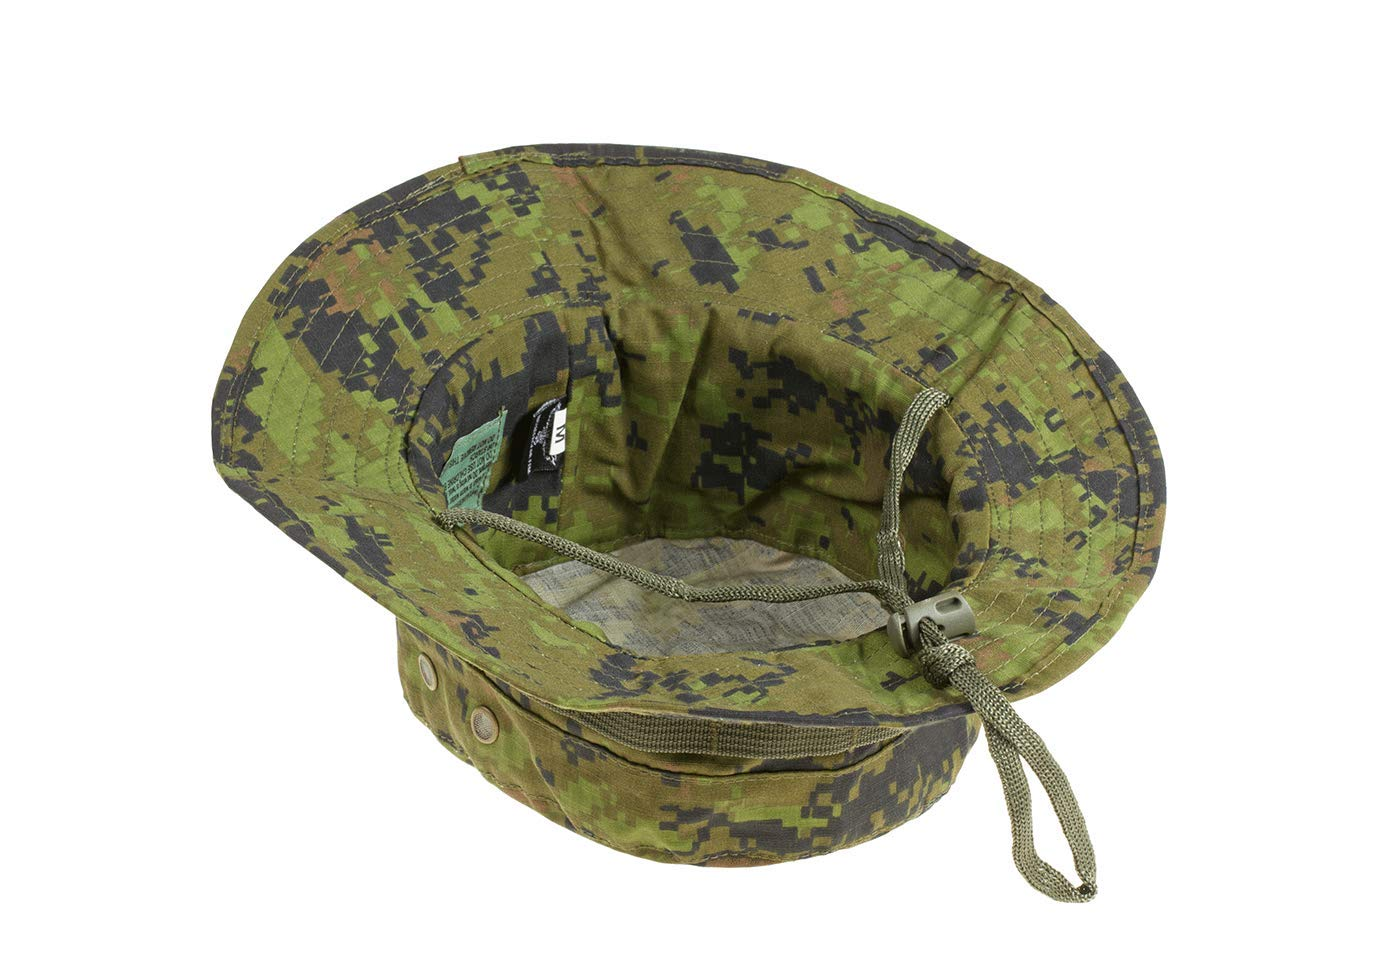 Invader Gear Military Style Ripstop Boonie Hat ATP Black Night Camo Cap Airsoft